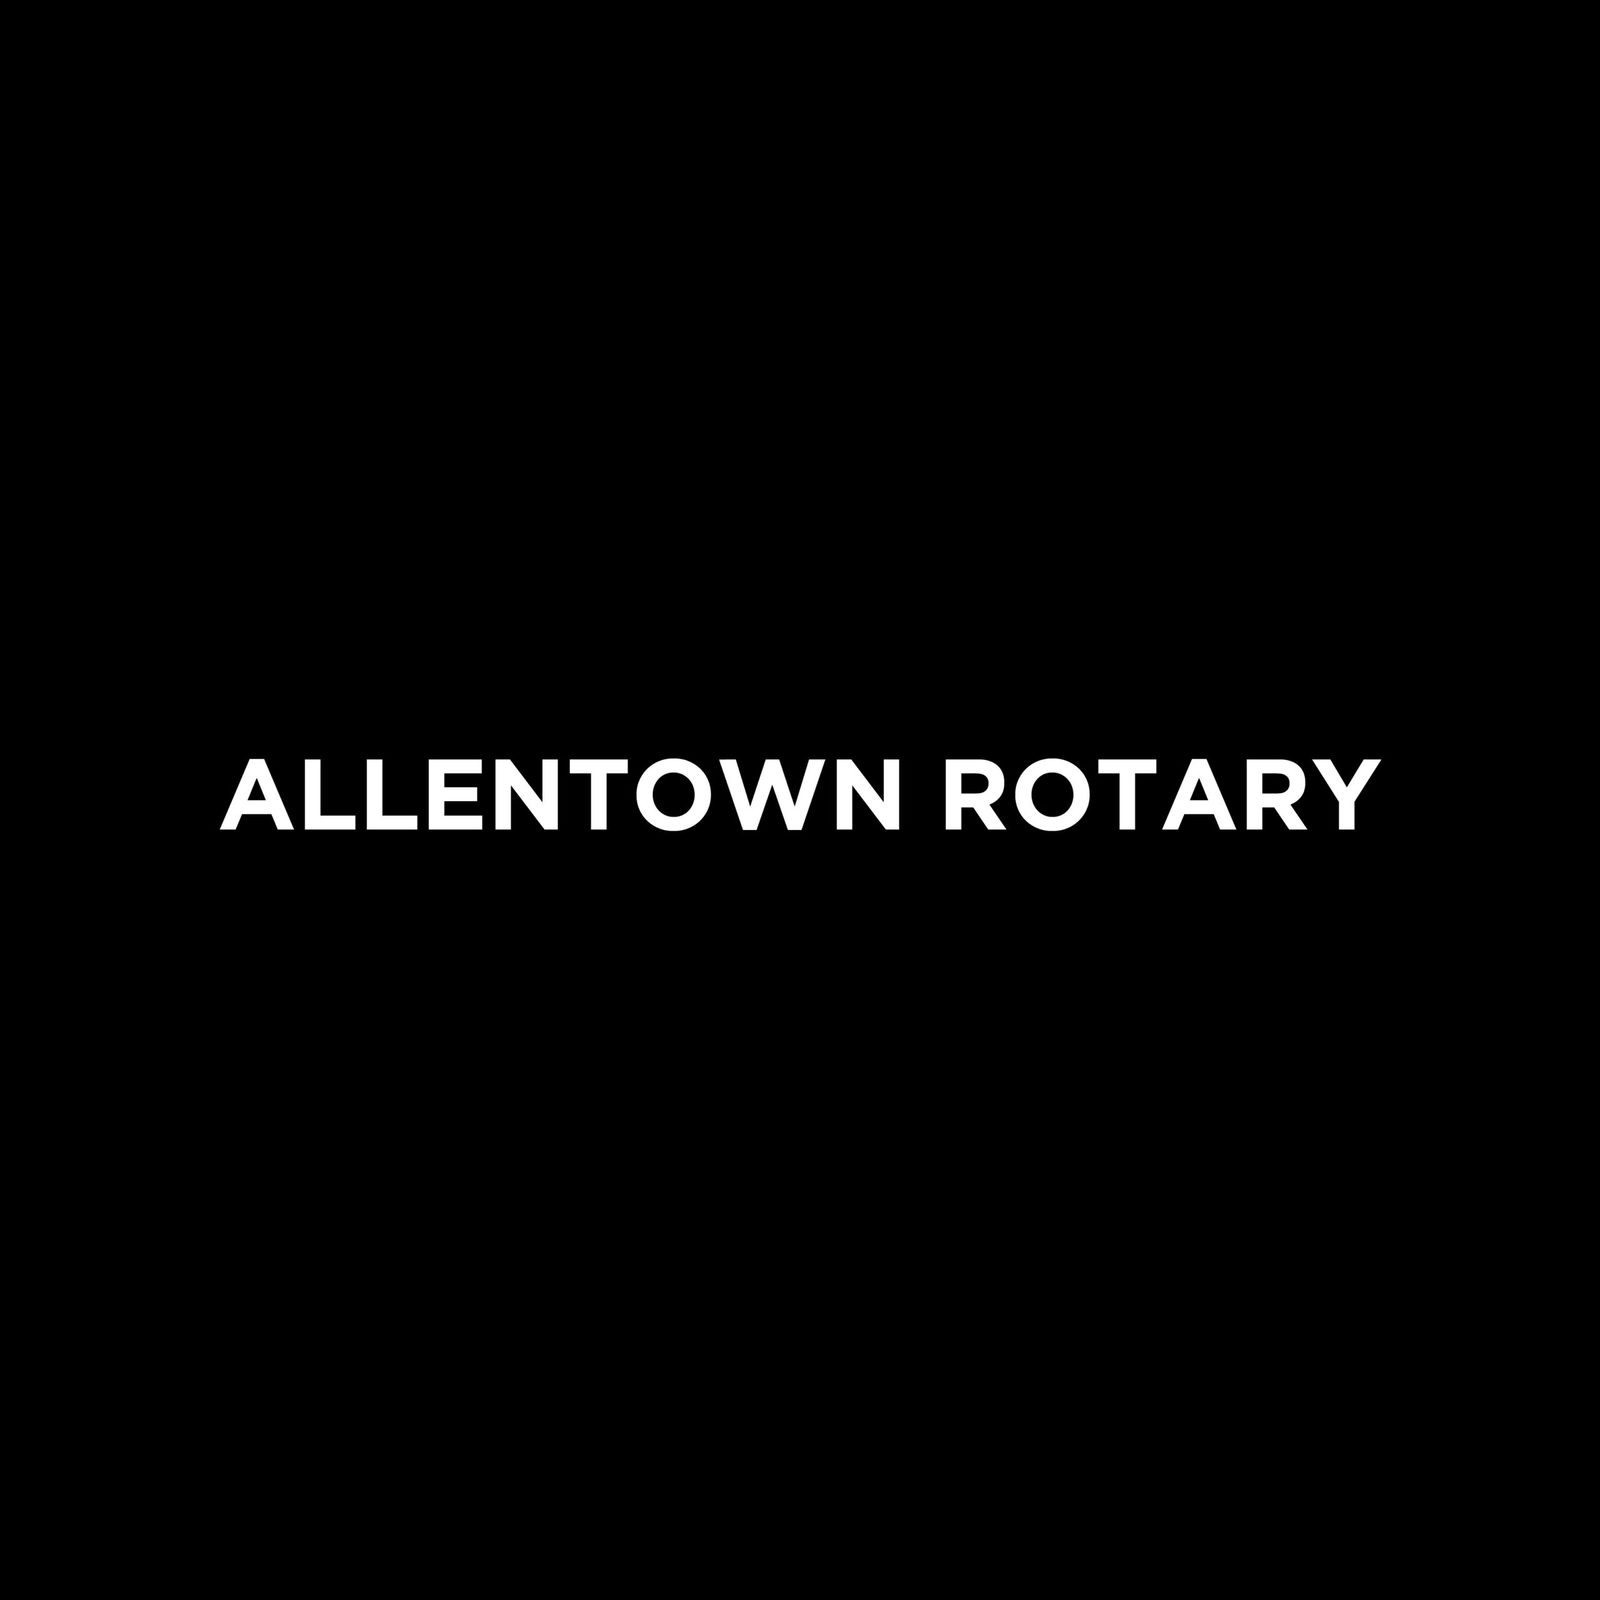 Allentown Rotary